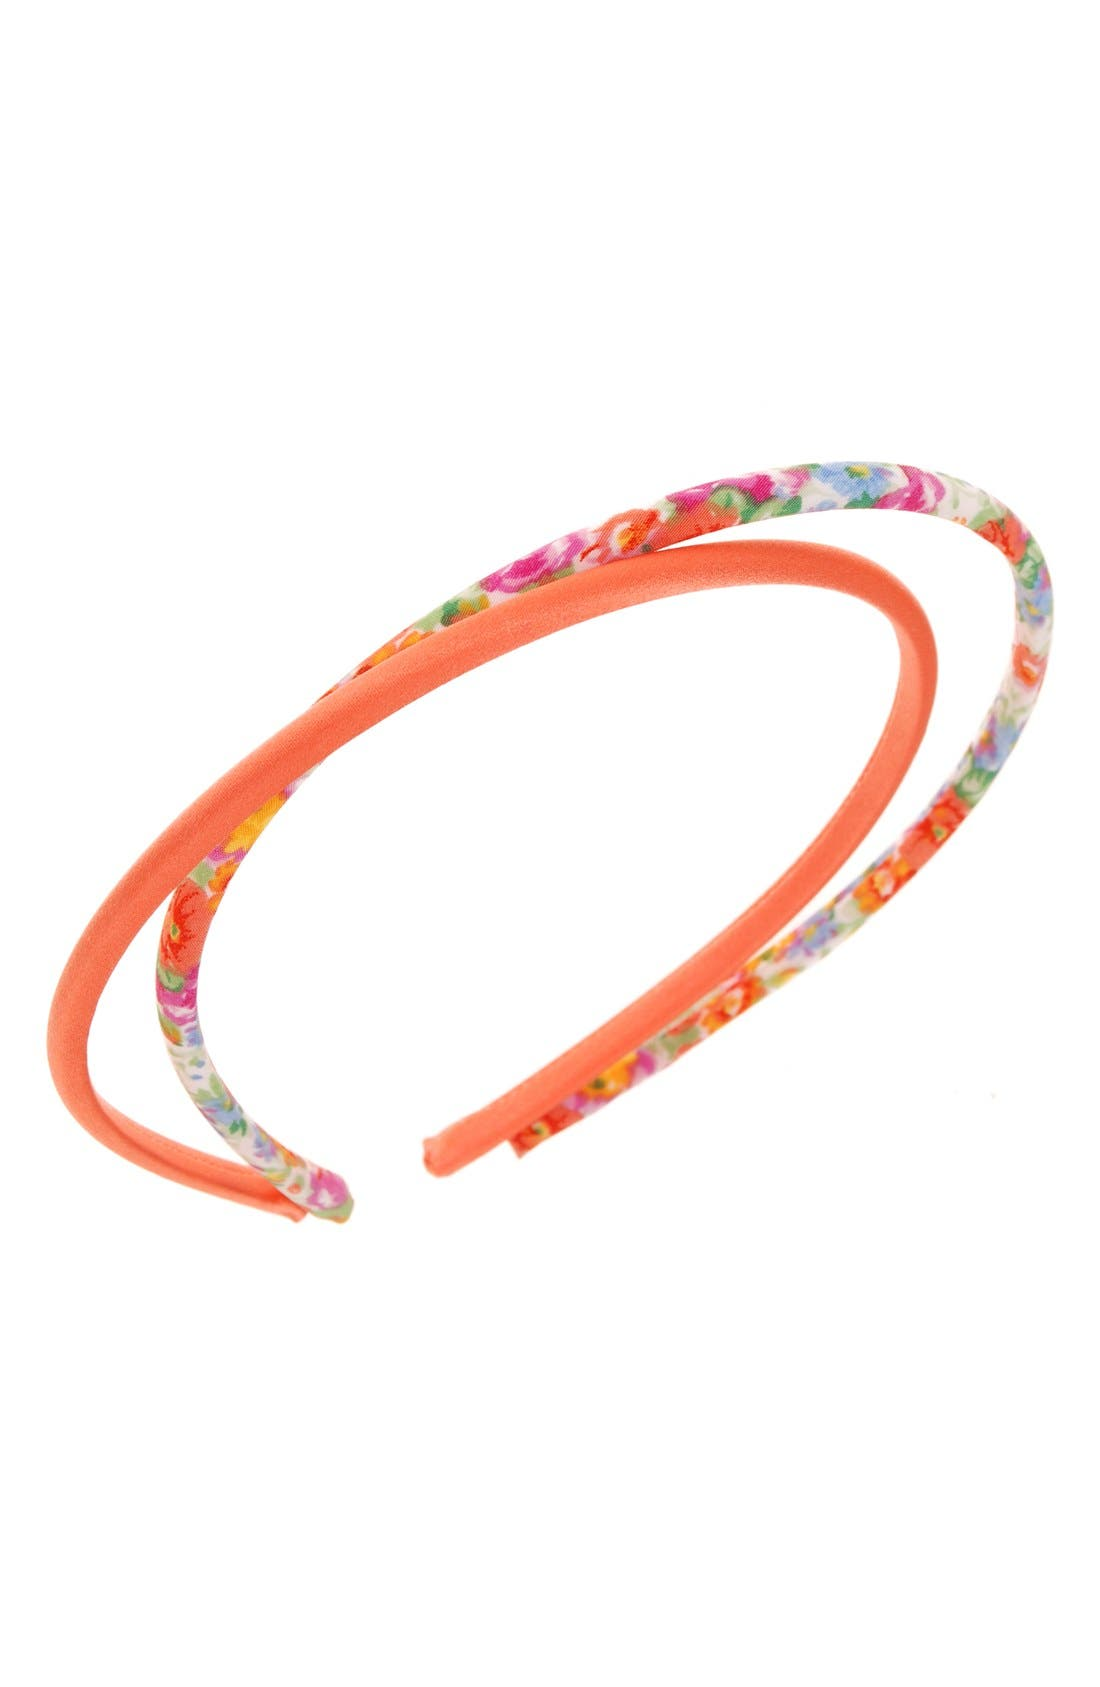 L. Erickson Skinny Silk Headbands (2-Pack) (Girls)